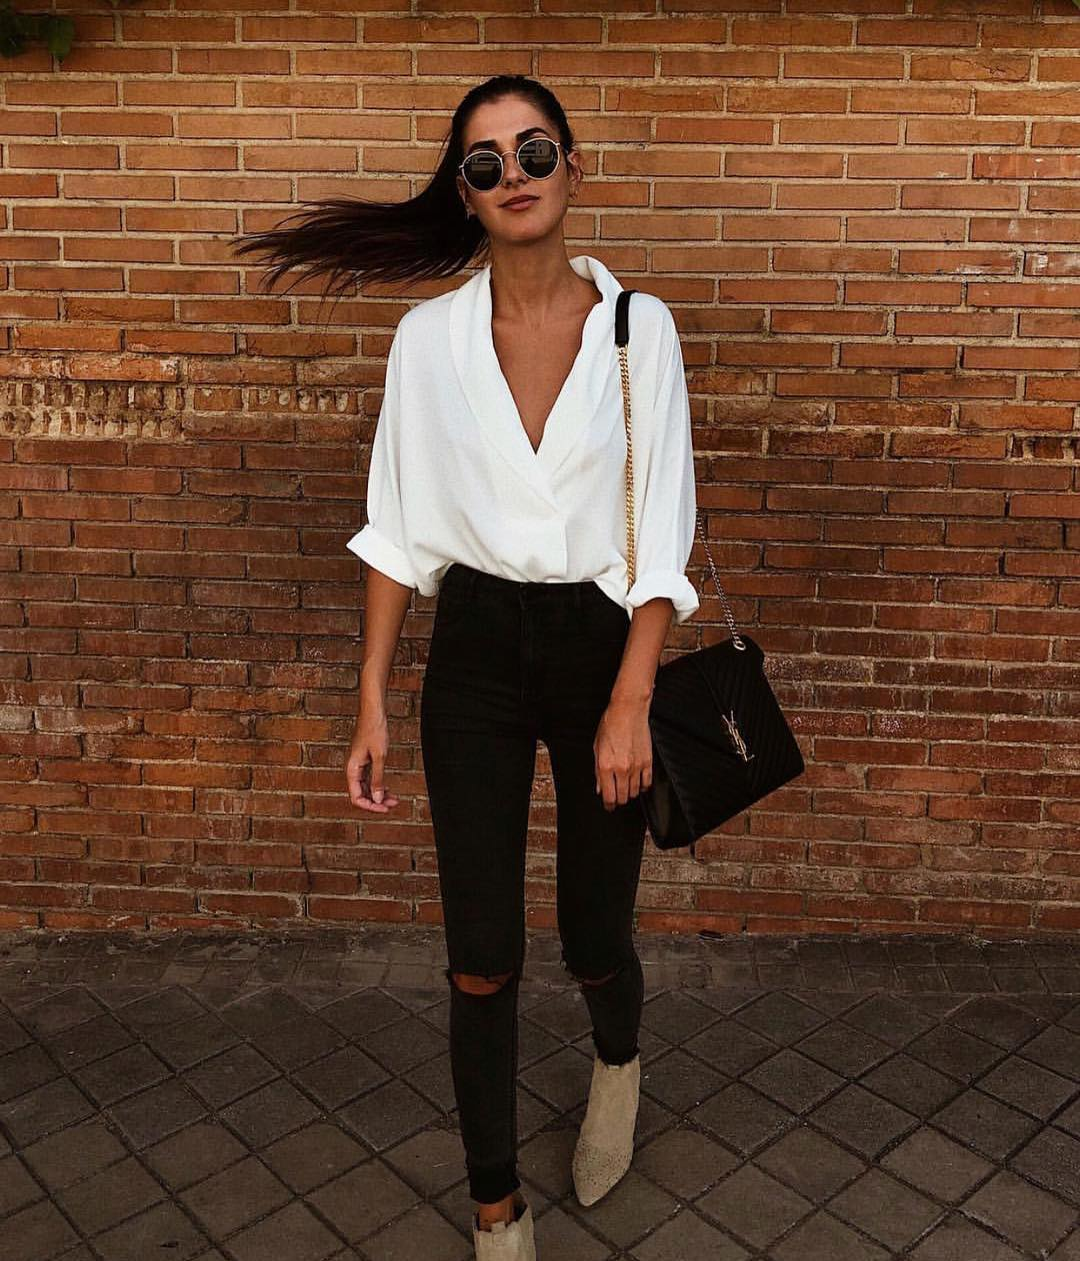 White Shirt With Black Skinny Jeans And Beige Suede Ankle Boots For Summer 2021